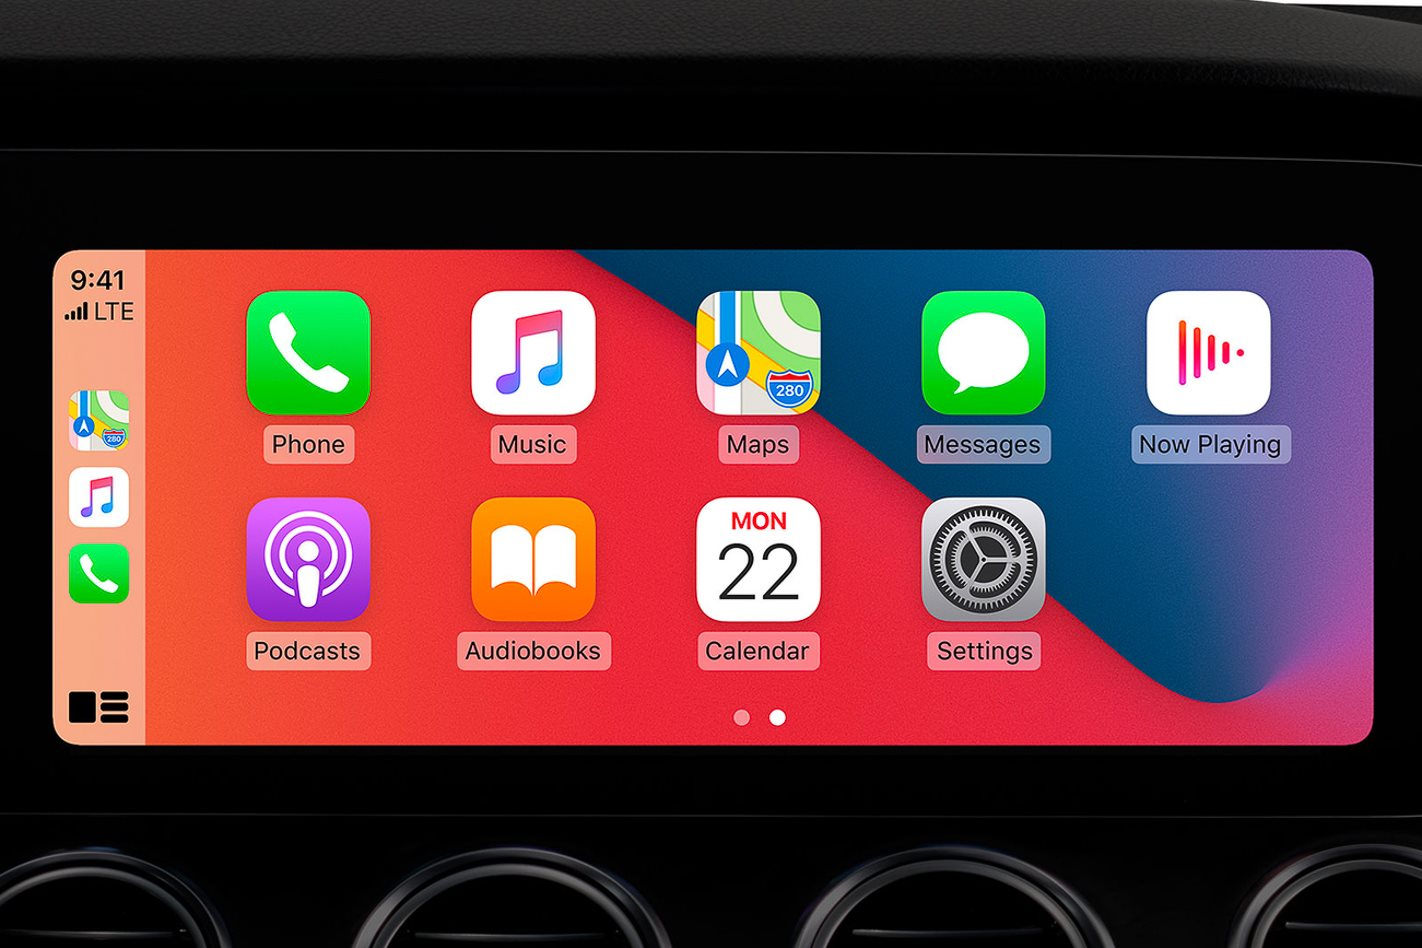 Apple releases iOS 14 update with CarPlay enhancements